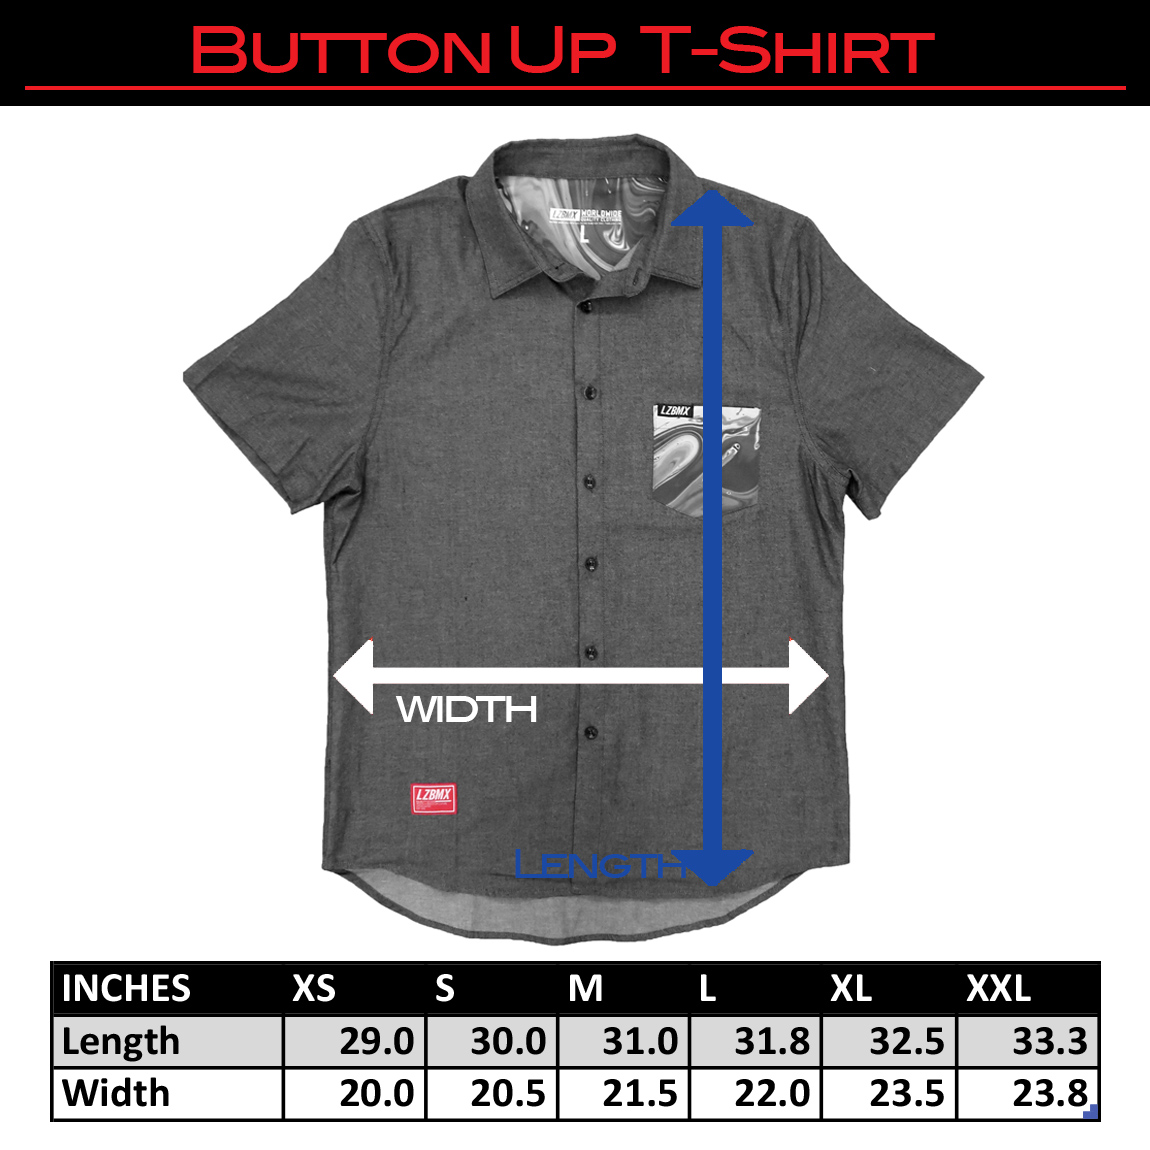 button-up-sizing.jpg